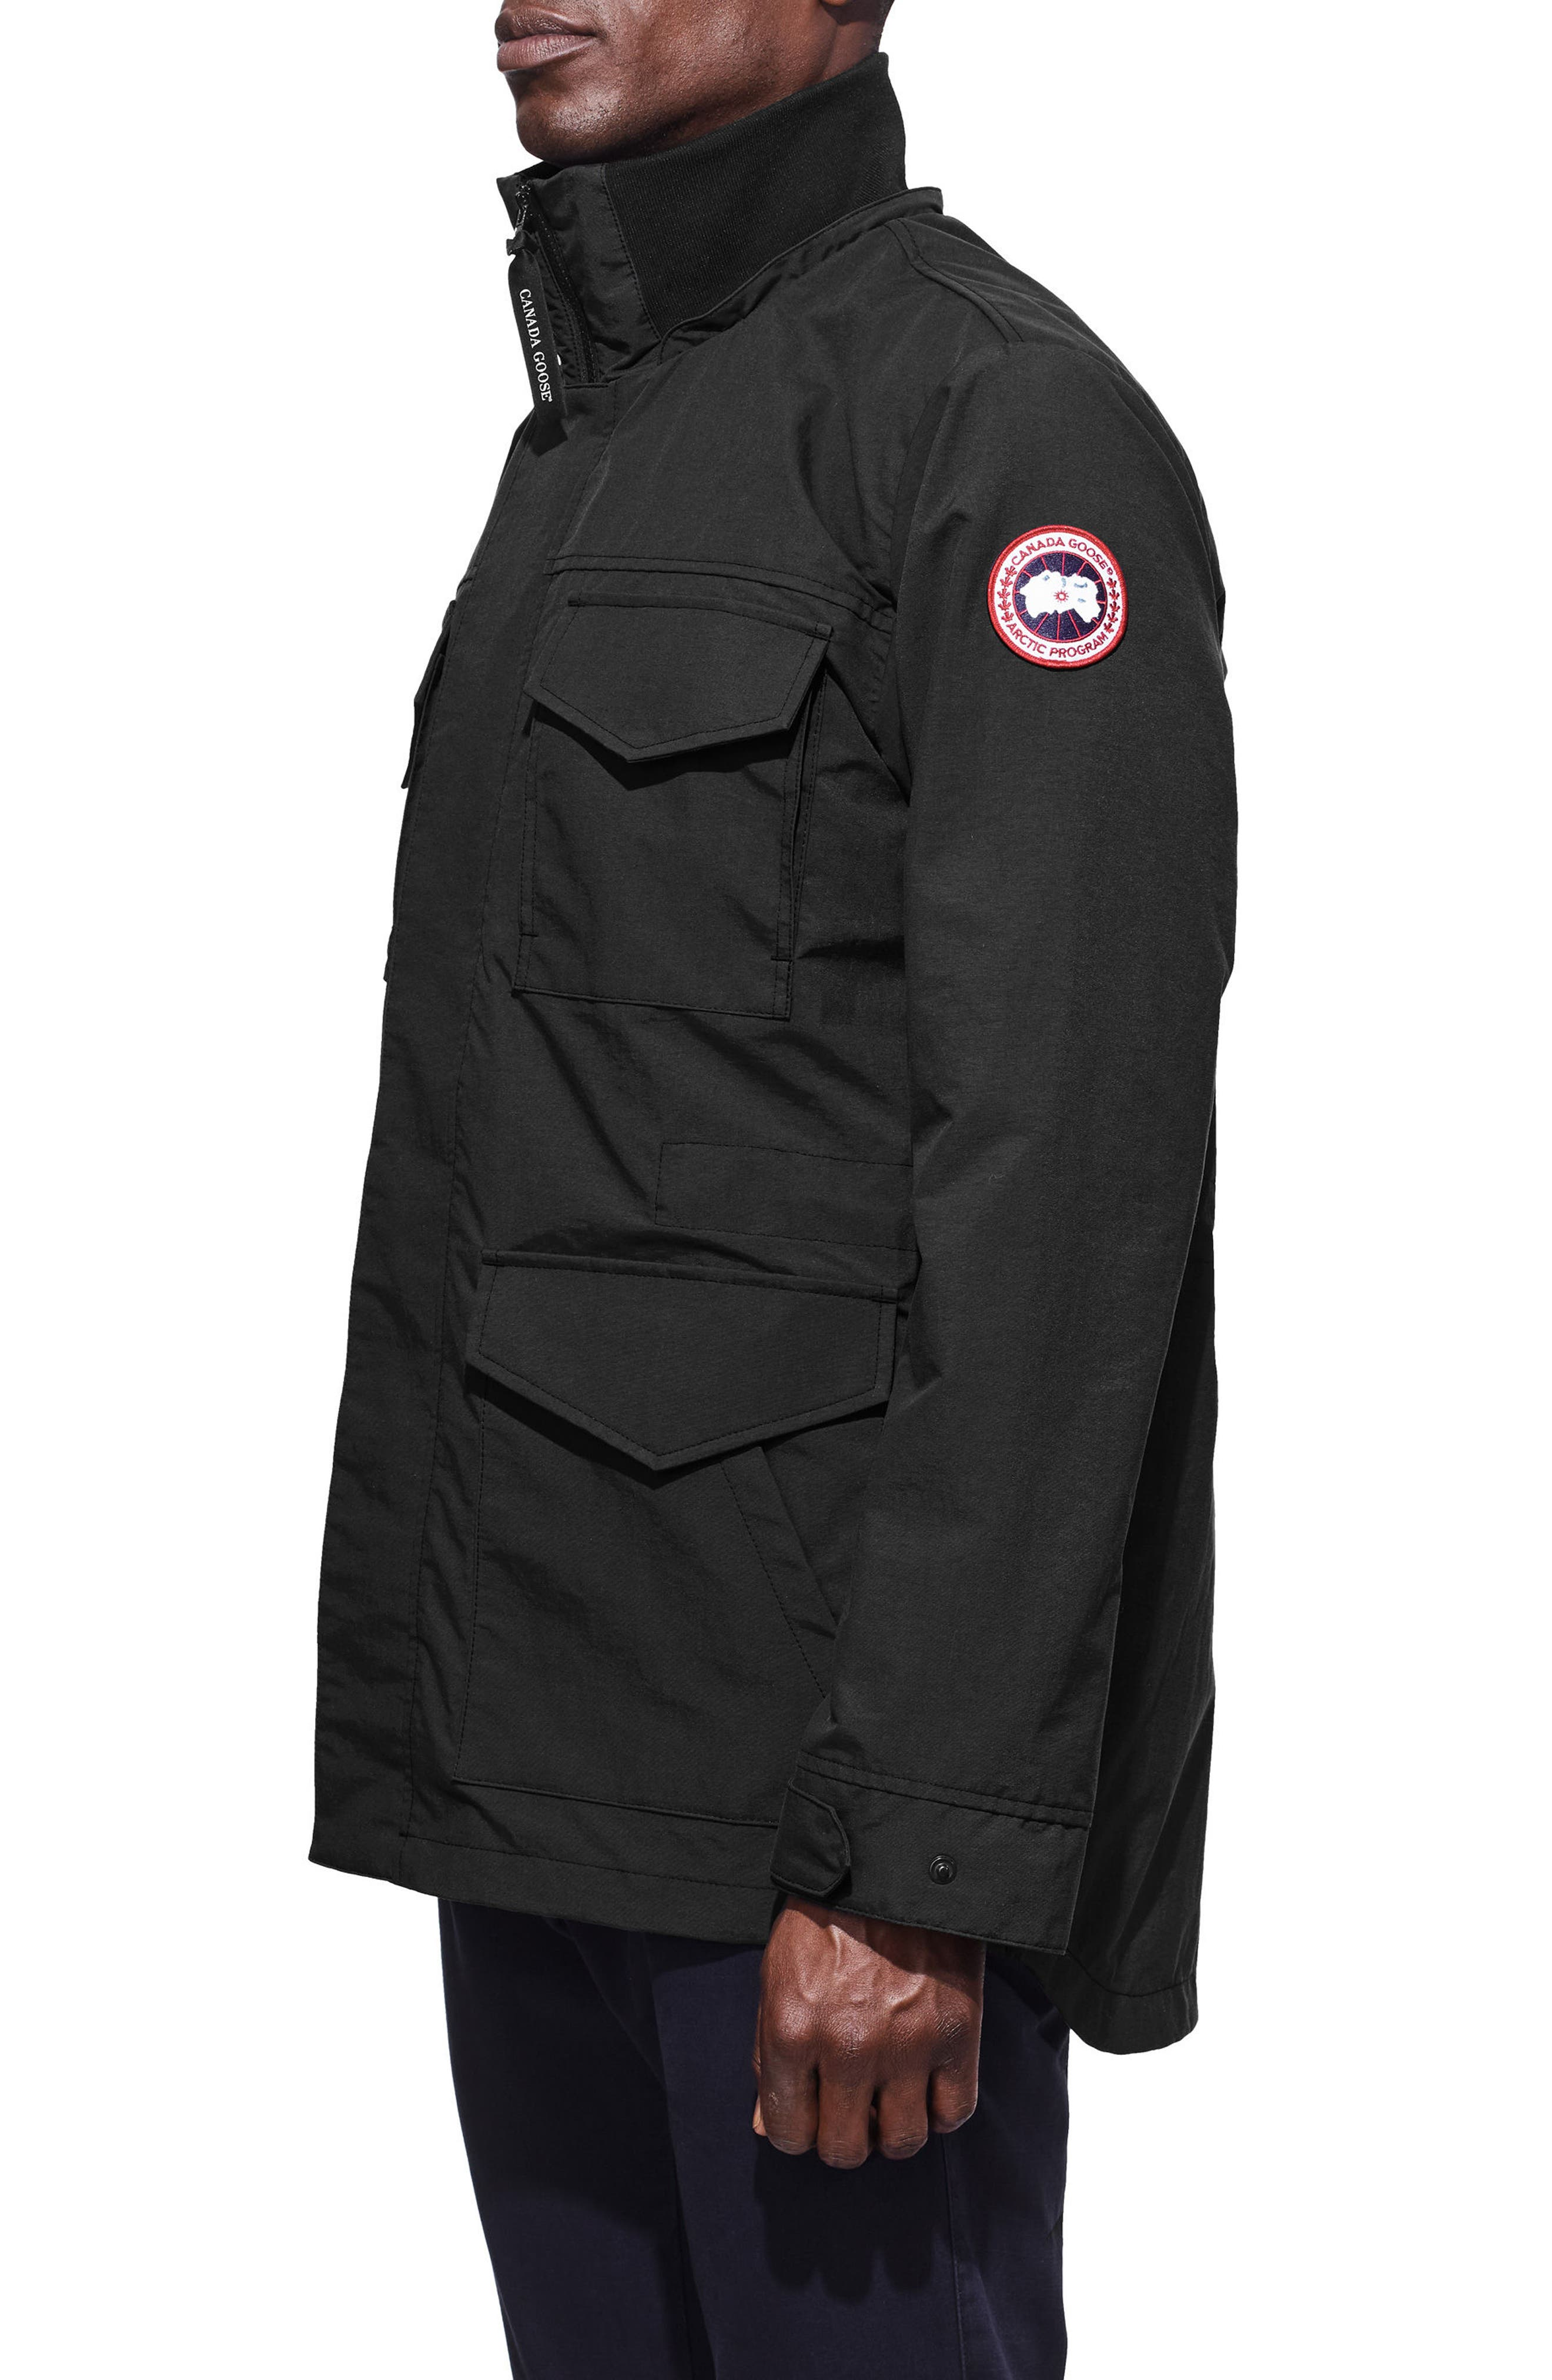 CANADA GOOSE,                             Voyager Jacket,                             Alternate thumbnail 3, color,                             001